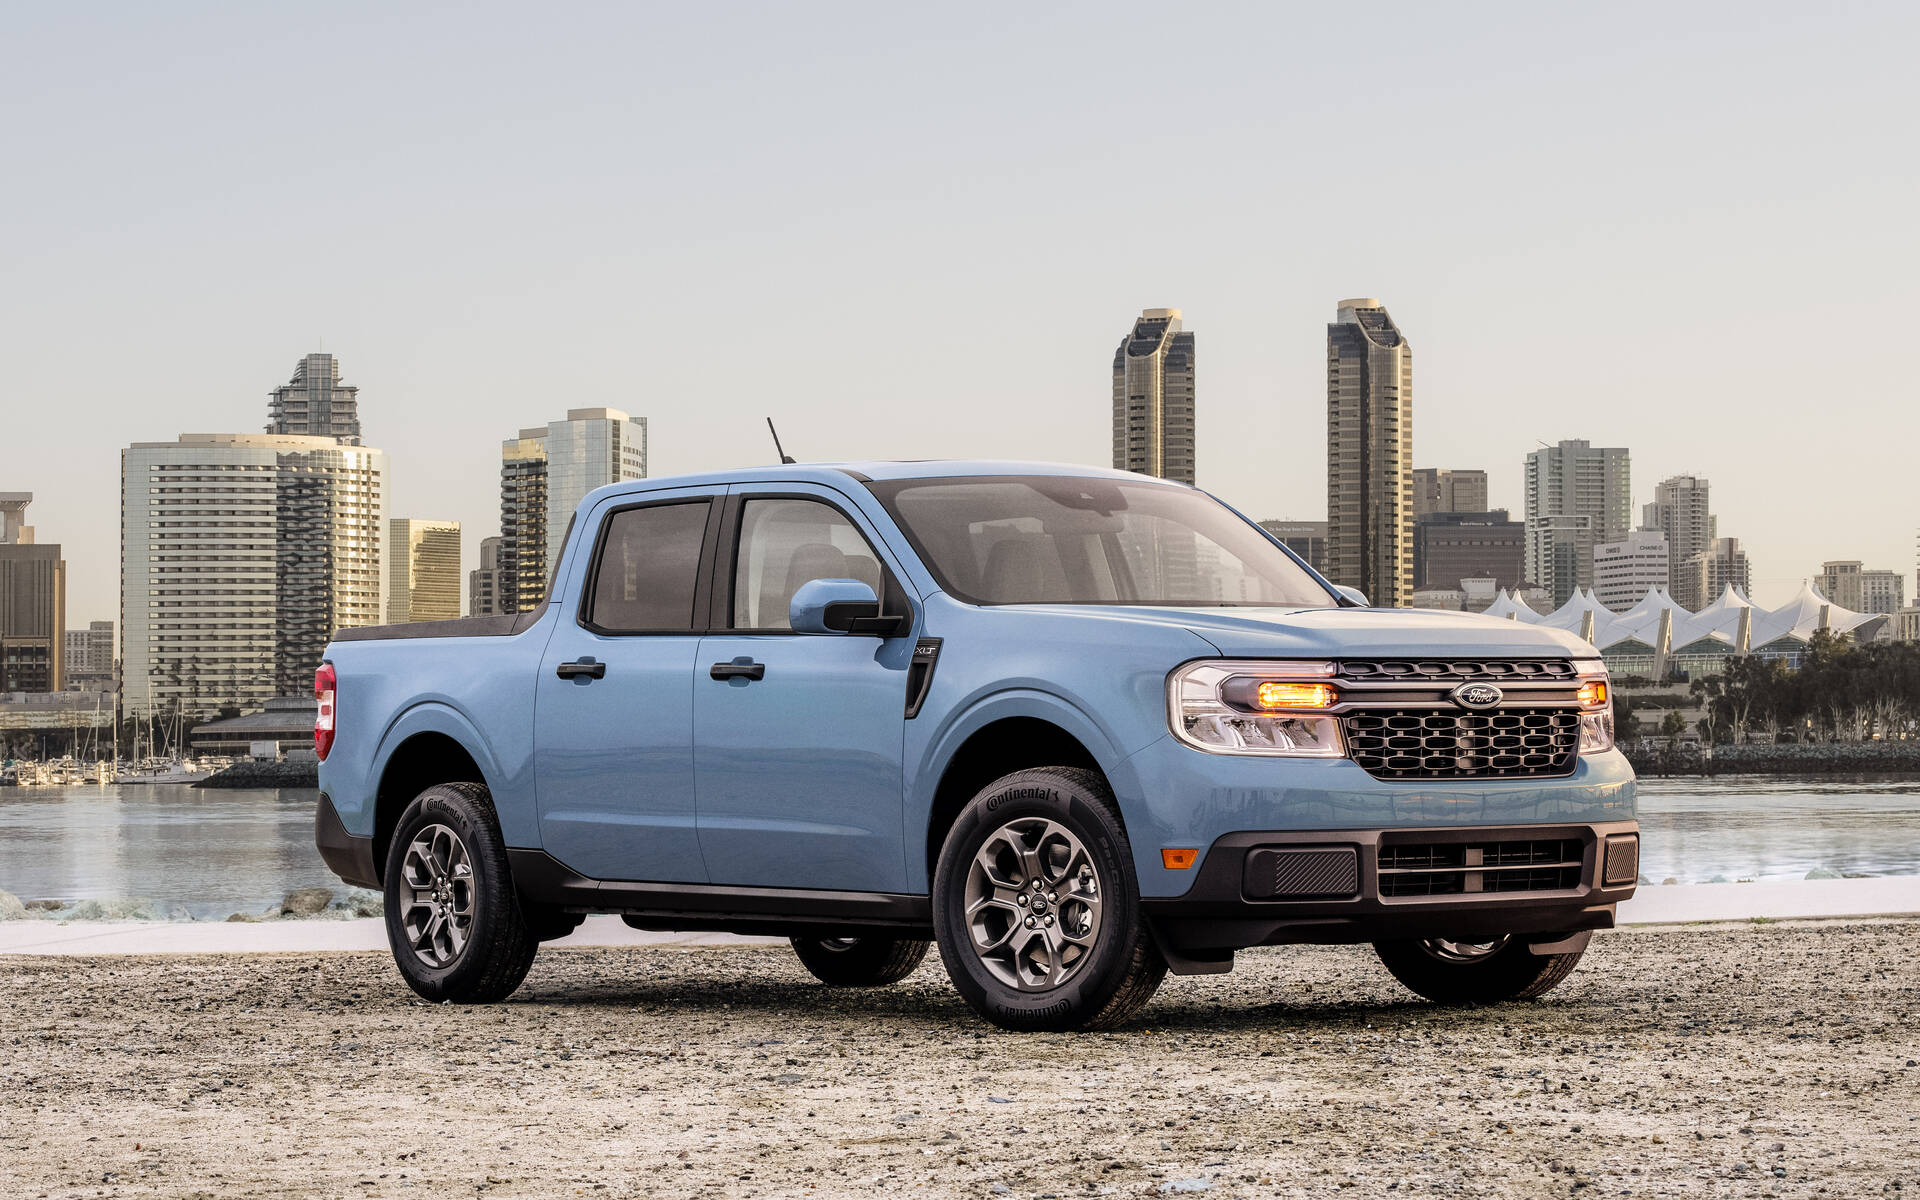 Tiny Tough Guy: Is Ford Planning On A Factory Hot Rodded Version Of The Little Maverick Truck?!